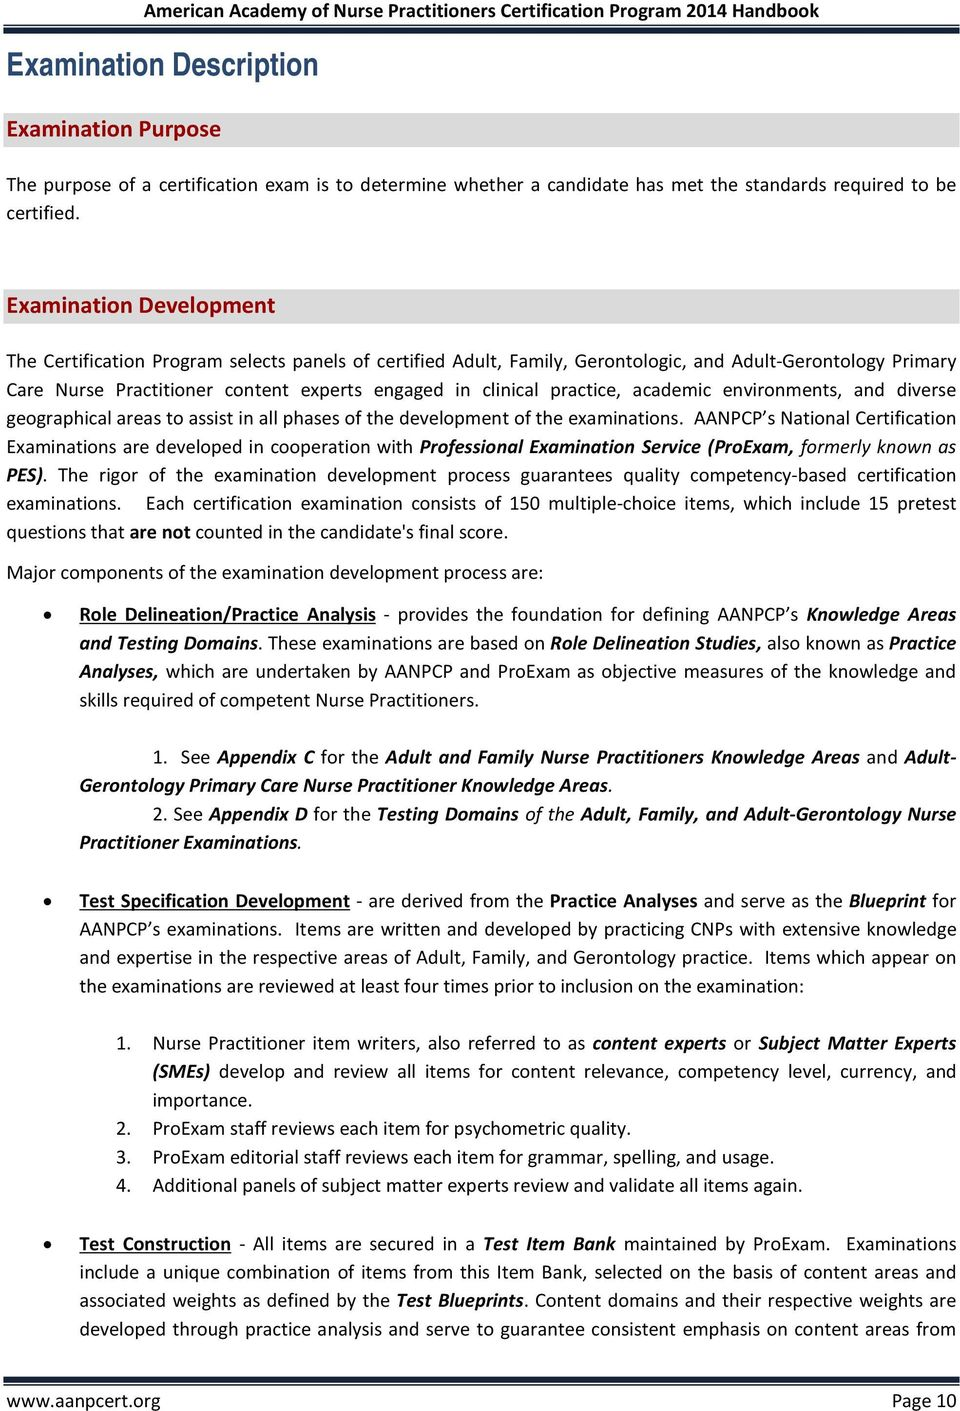 Aanpcp candidate handbook and renewal of certification handbook pdf practice academic environments and diverse geographical areas to assist in all phases of the malvernweather Choice Image